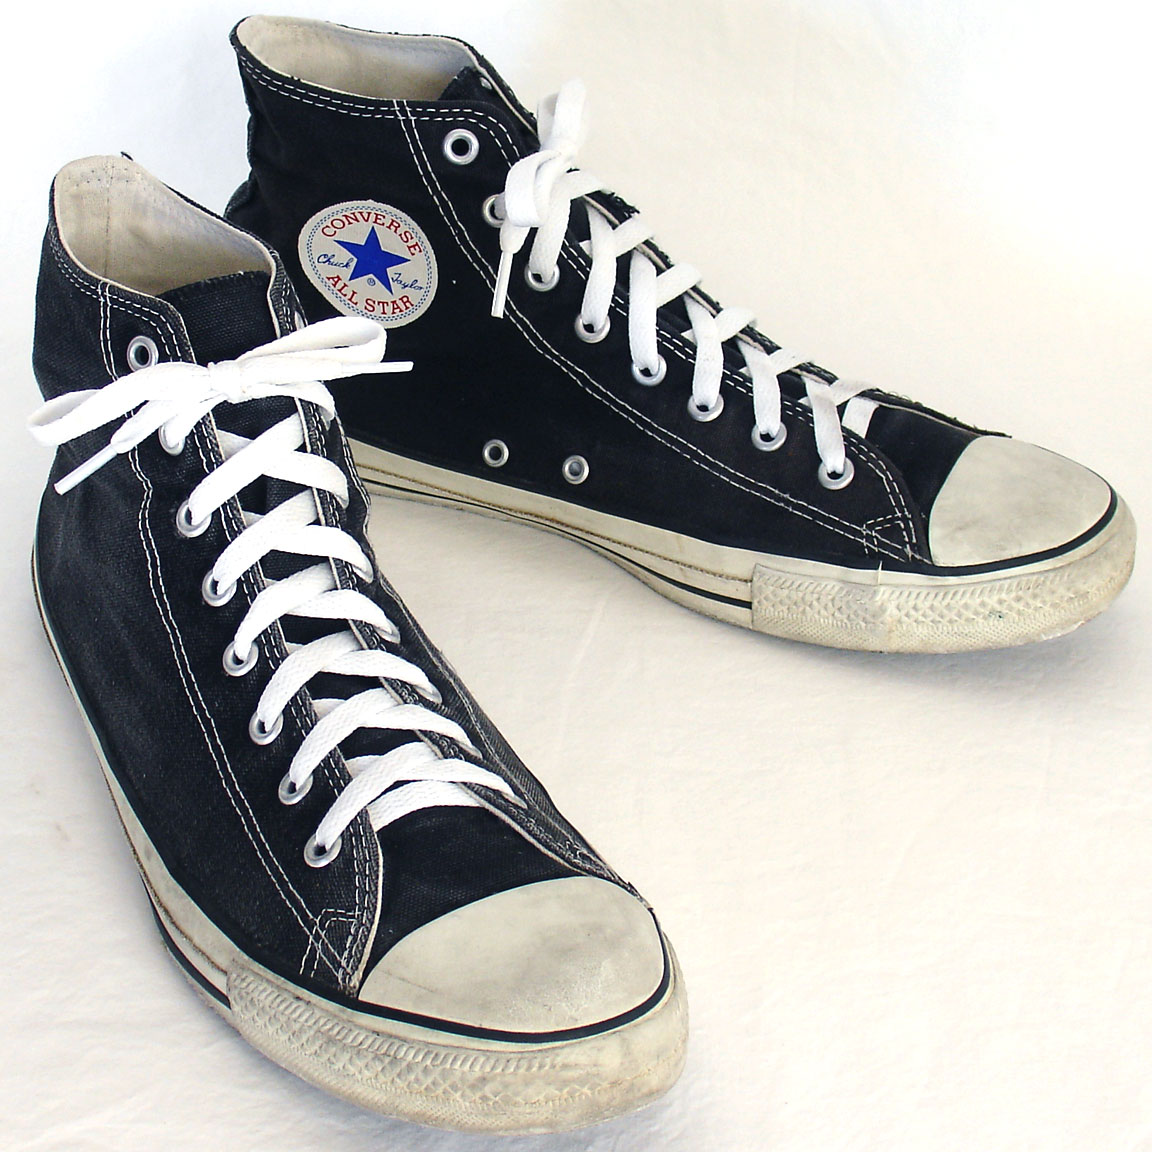 aba48dc9d7b Vintage American-made Converse All Star Chuck Taylor black hi-top shoes for  sale